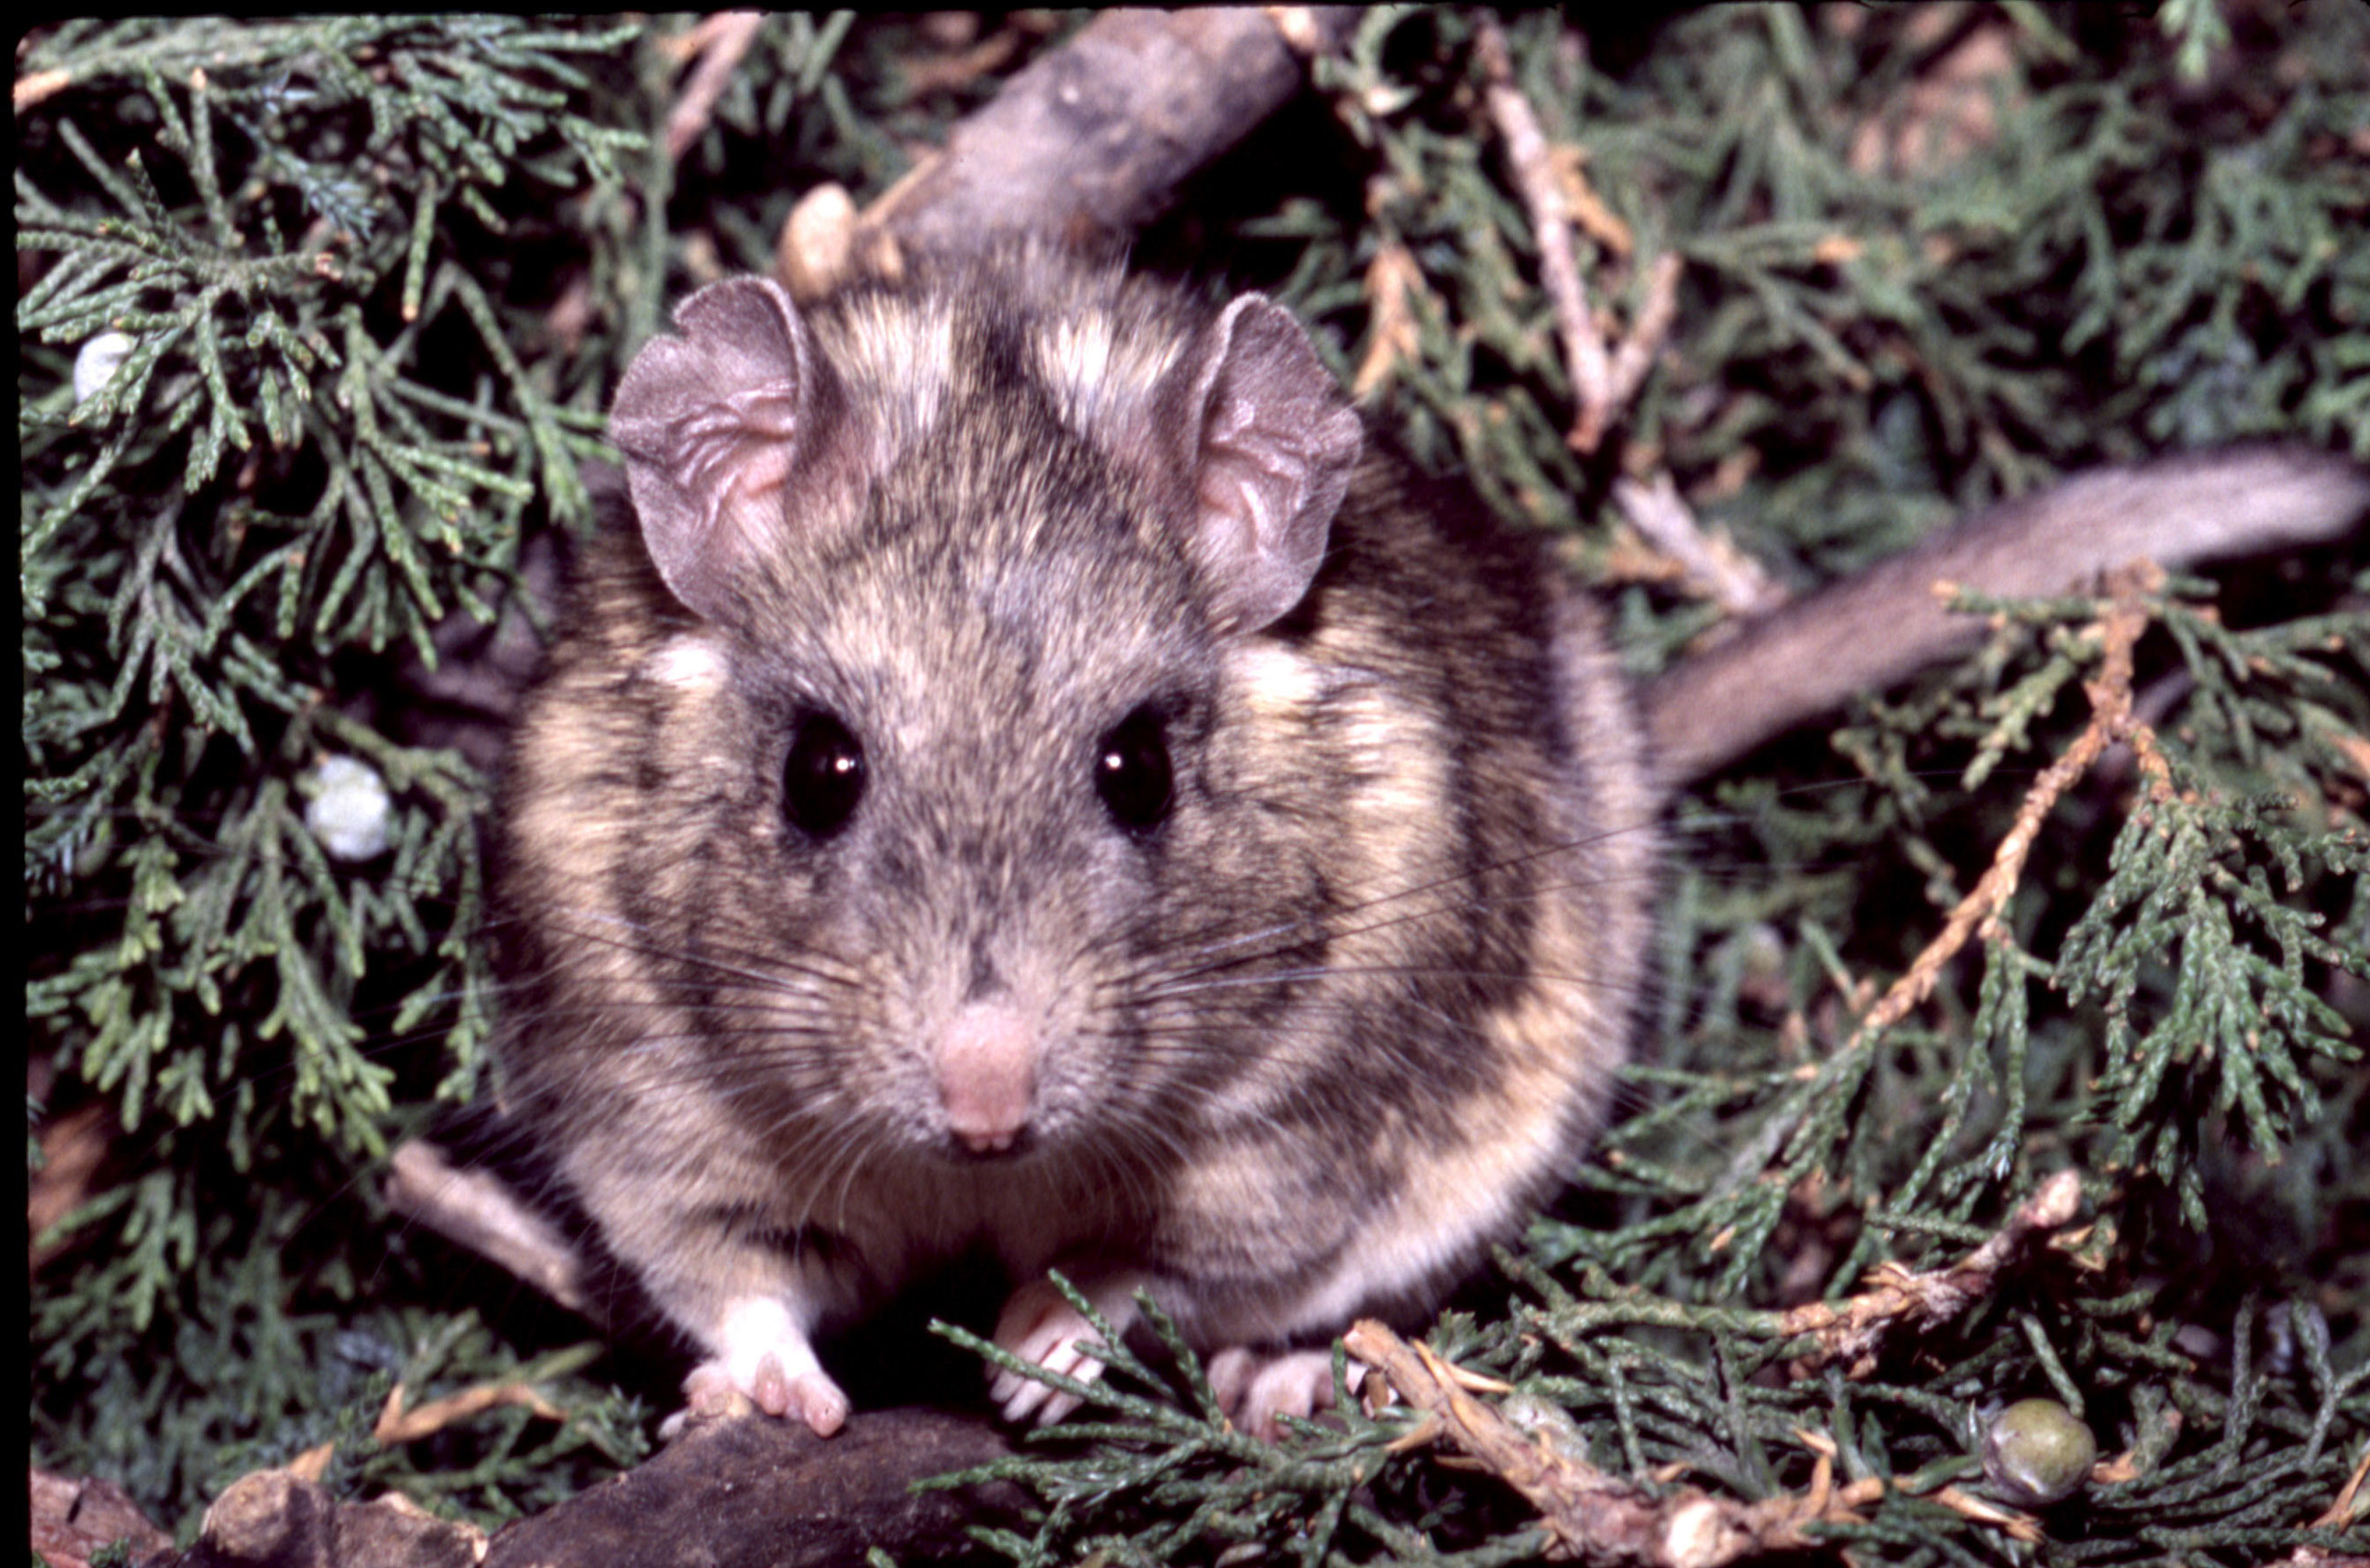 A Stephen's woodrat surrounded by its favorite food: toxic juniper.